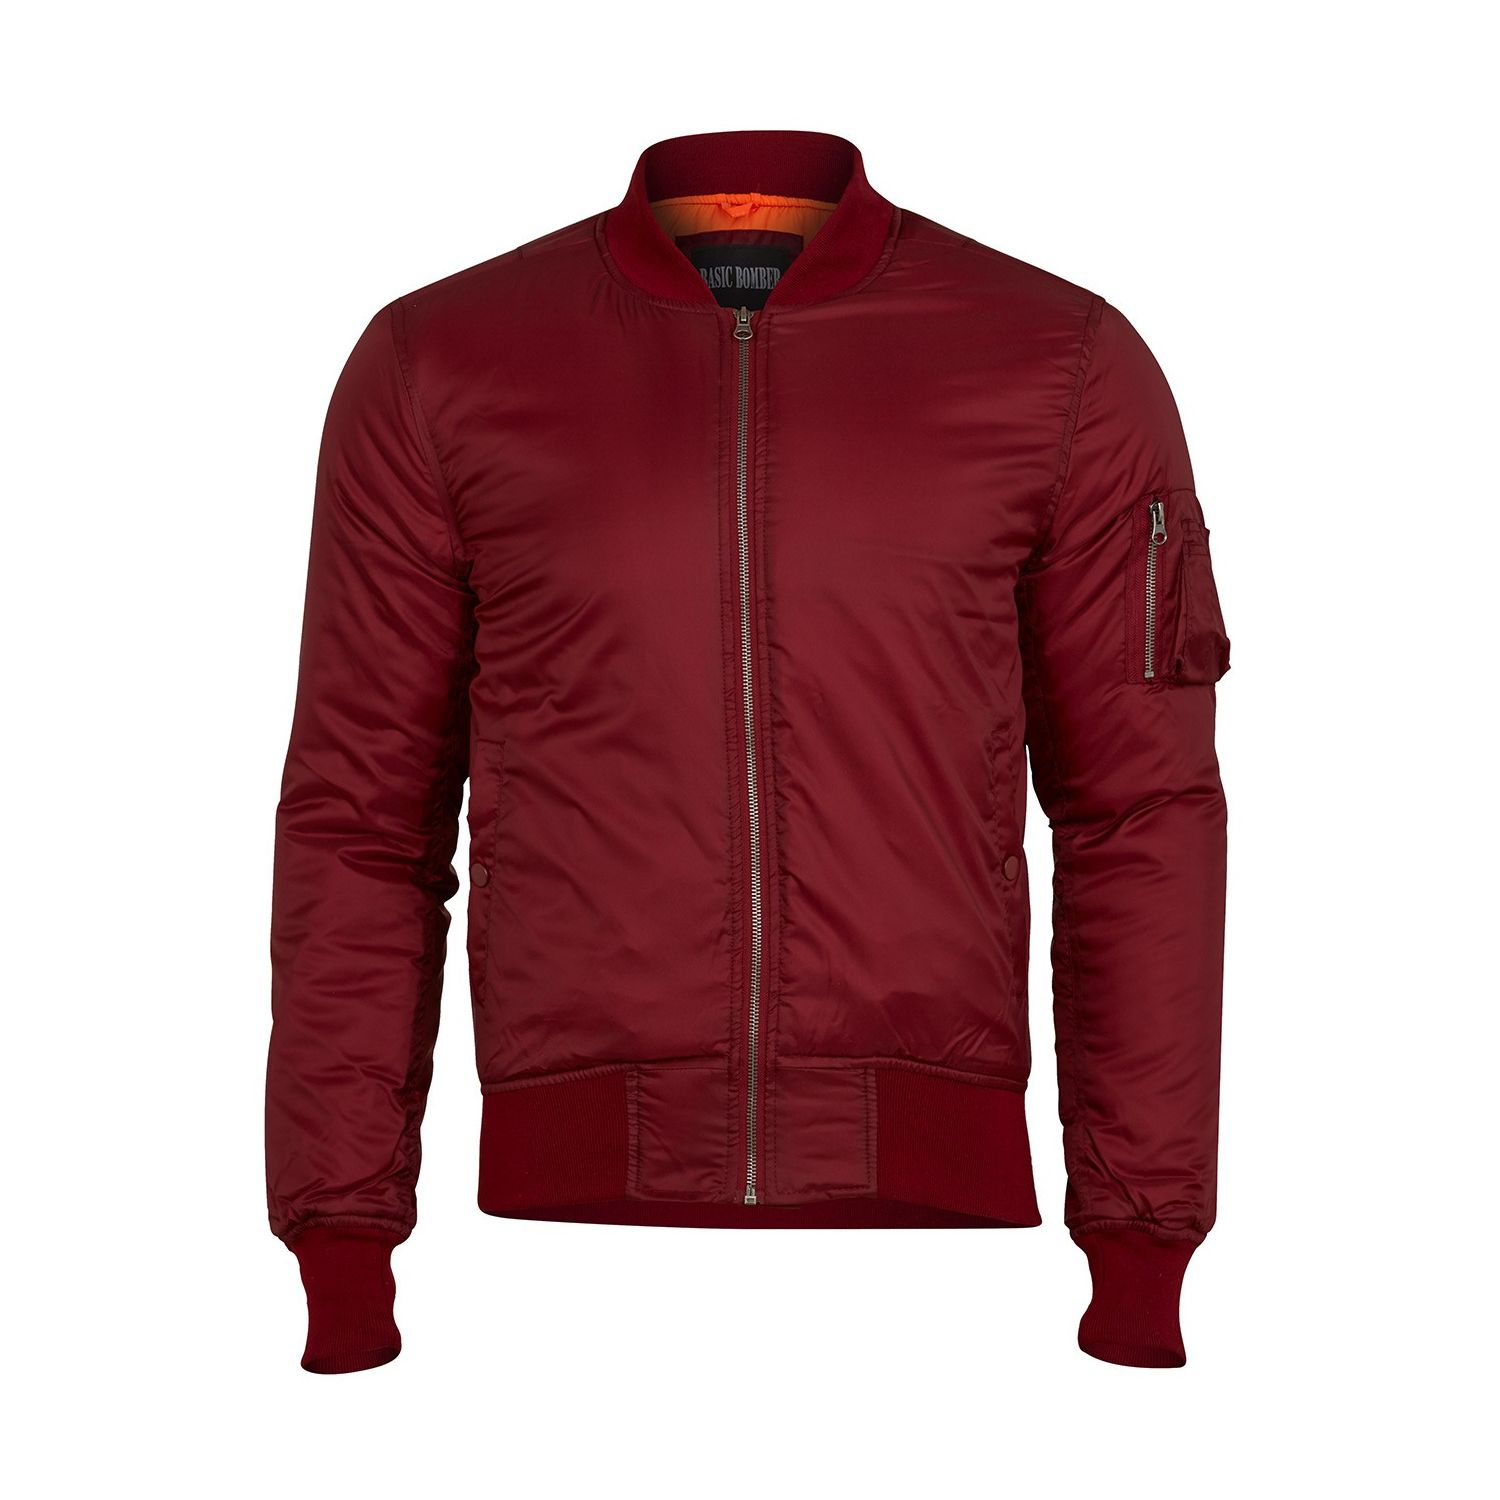 Bunda BOMBER MA1 basic VÍNOVÁ BORDEAUX SURPLUS 20-3530-11 L-11